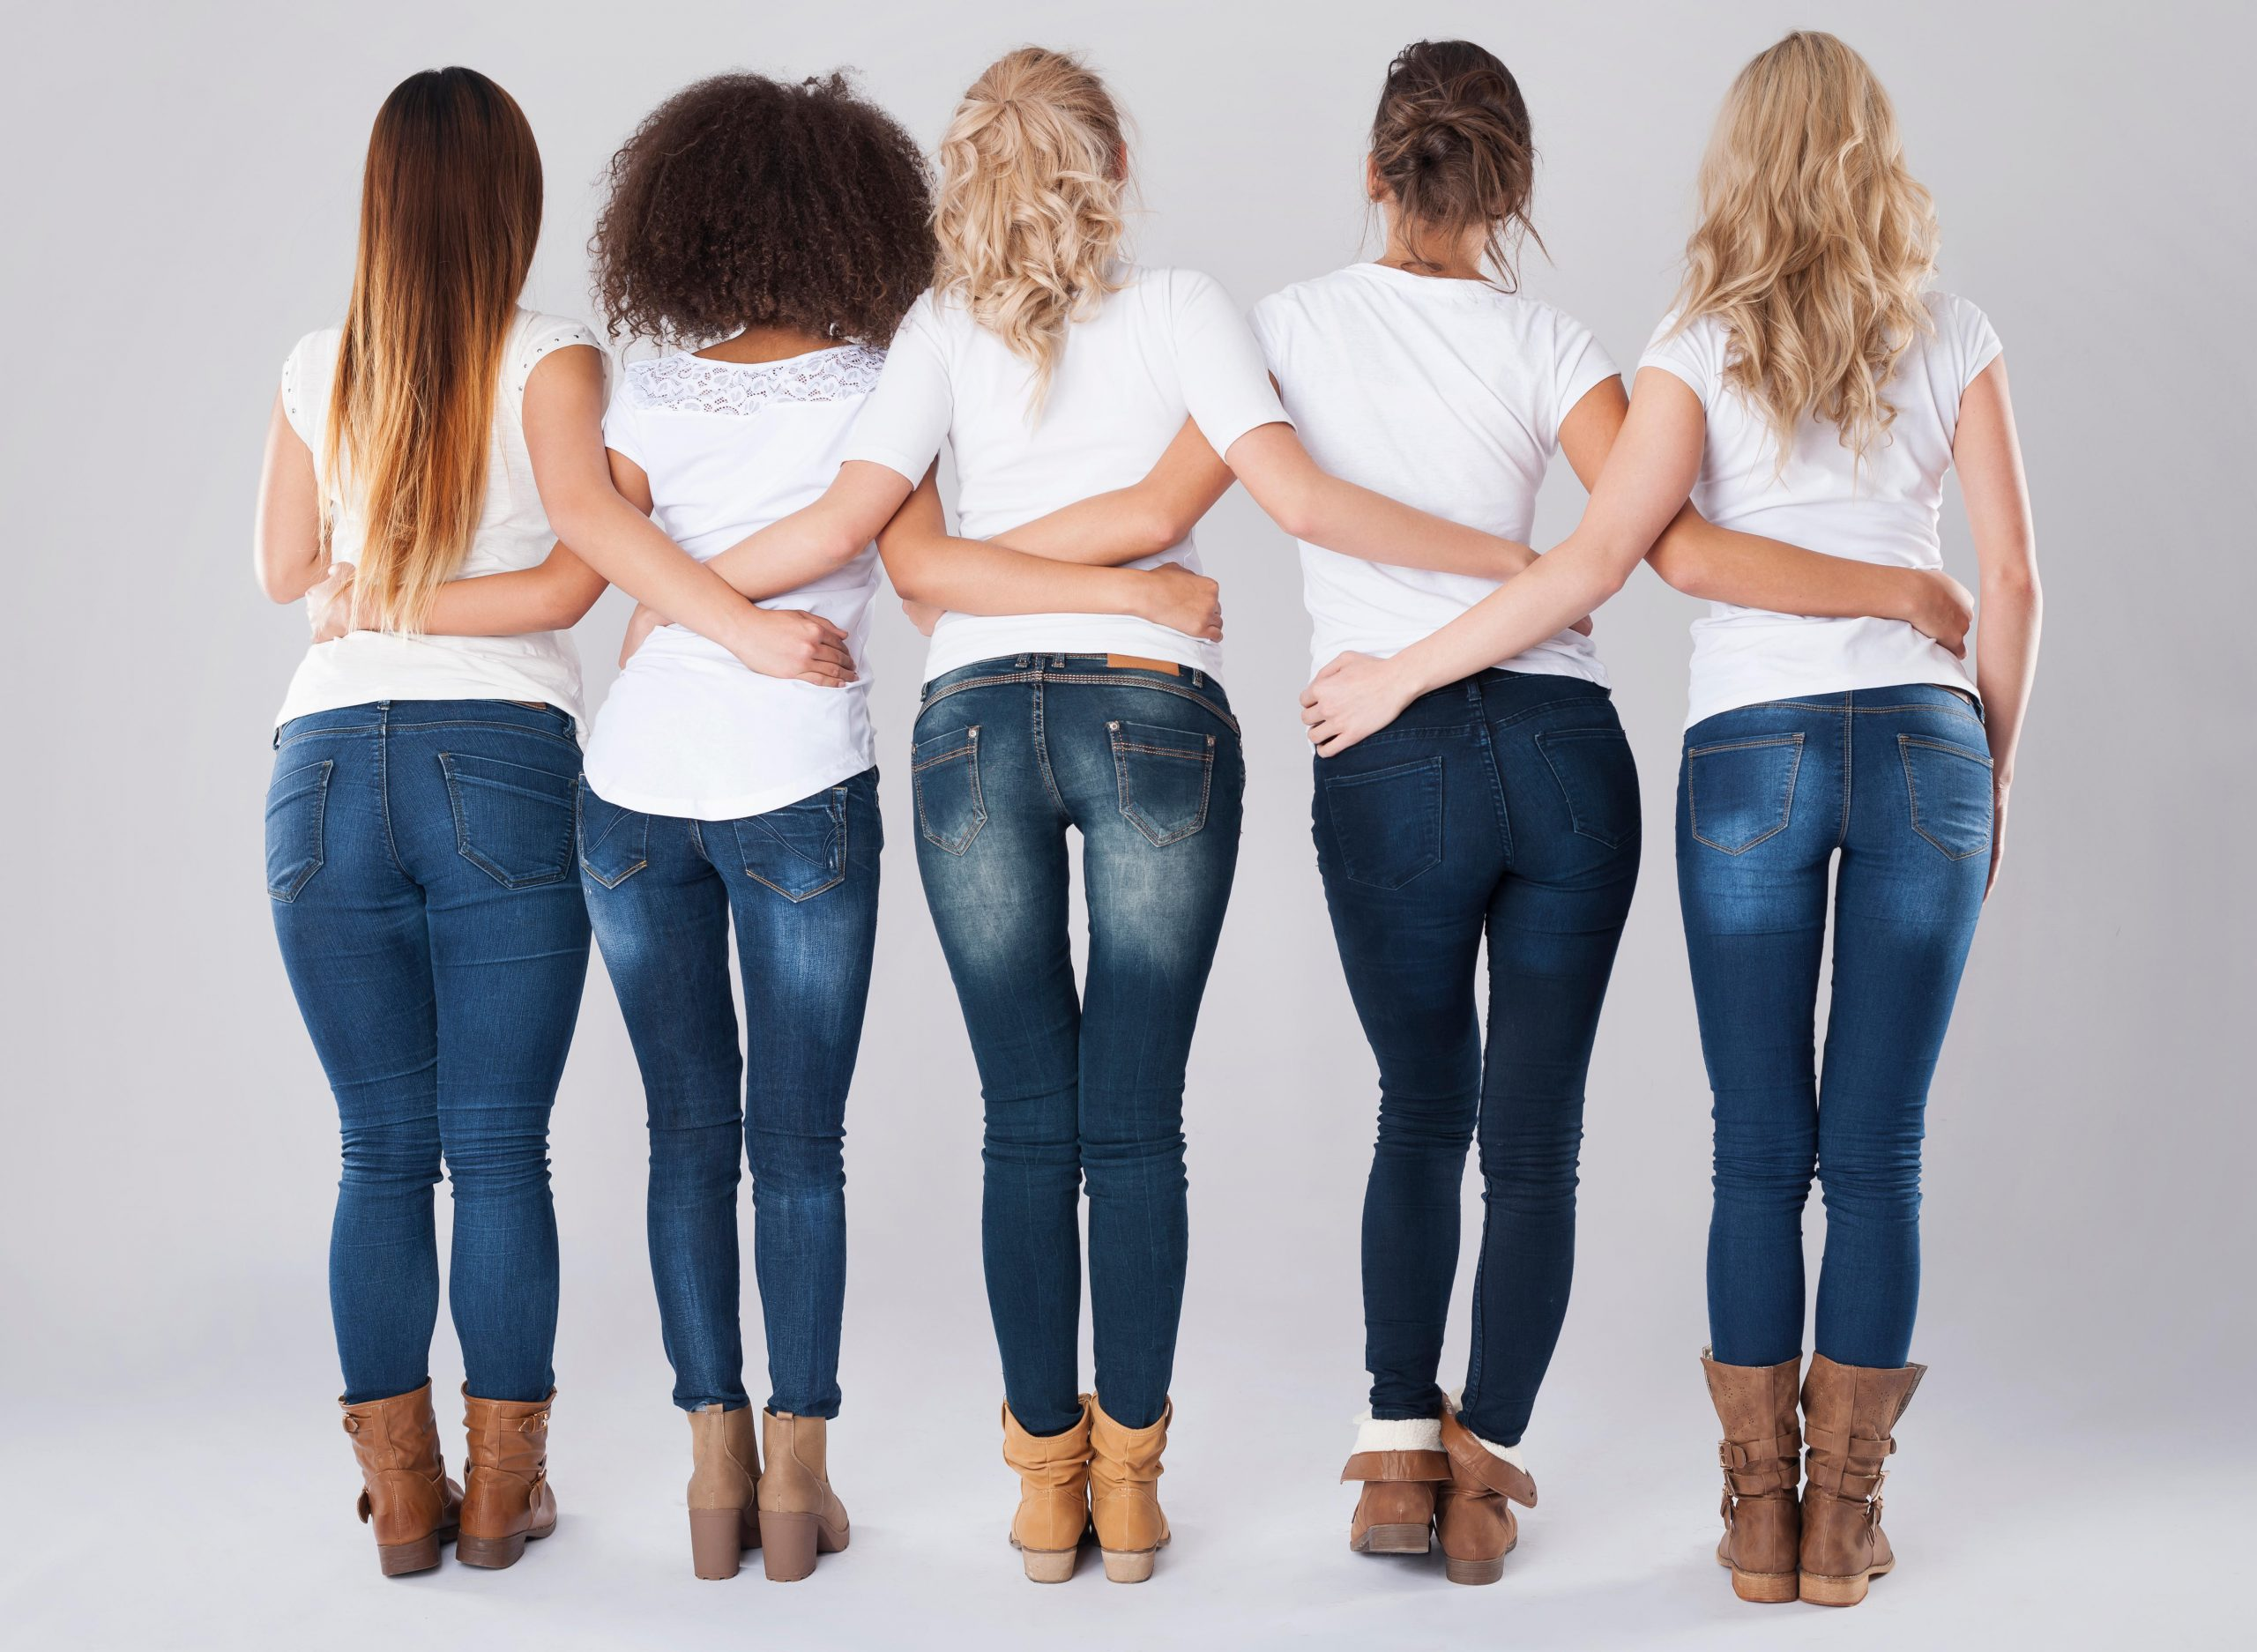 How to find the best jeans for your shape